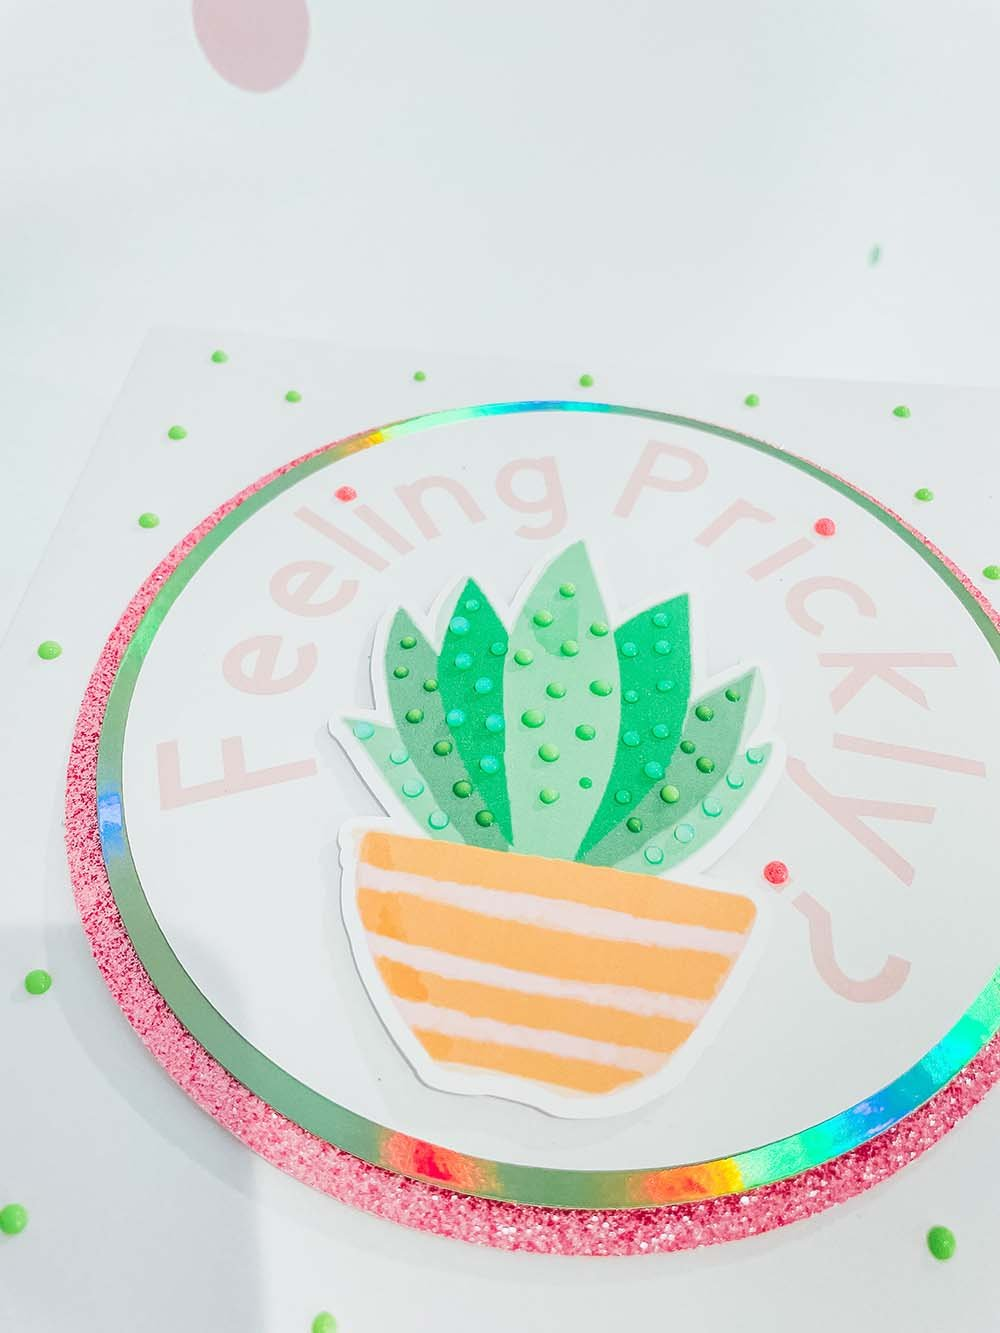 Succulent SVG Free Download For Sublimation and Crafting